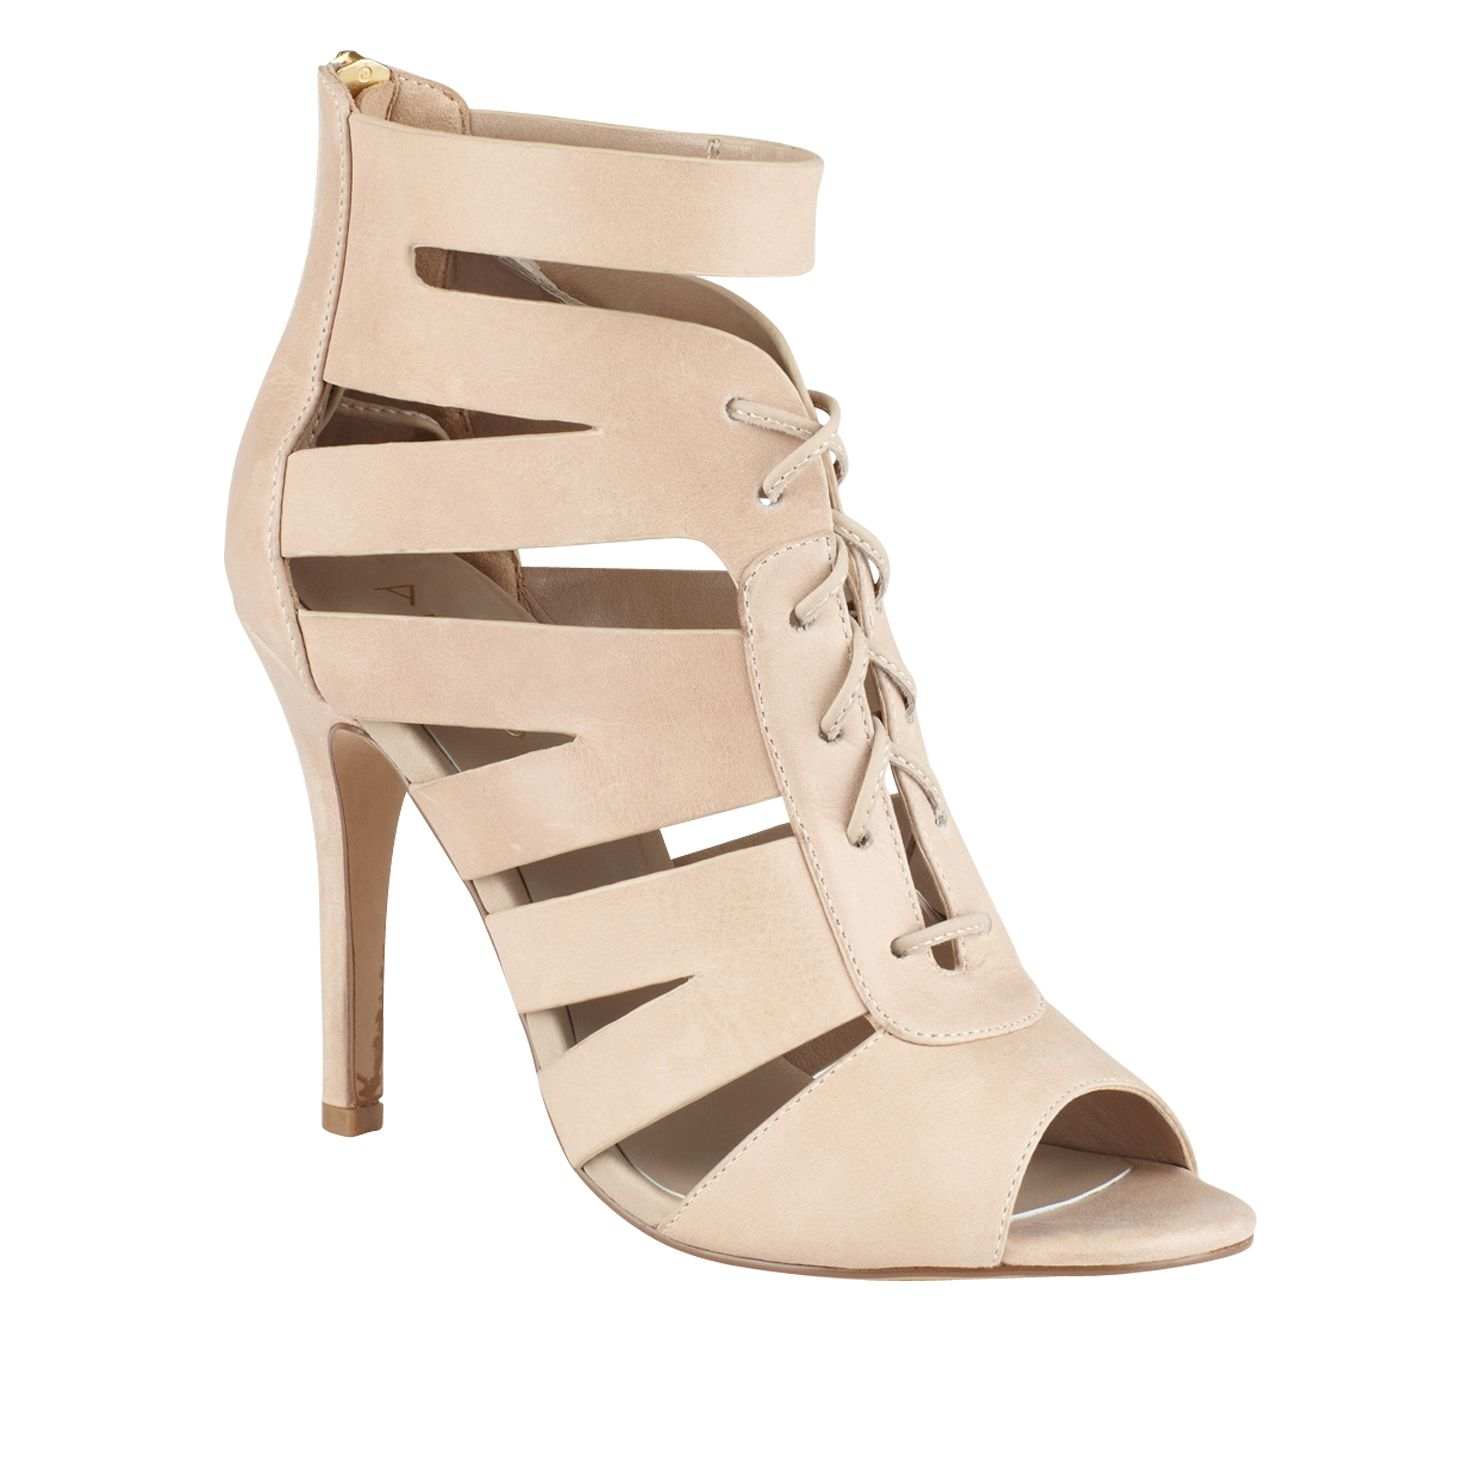 Katelina lace-up stilleto sandals